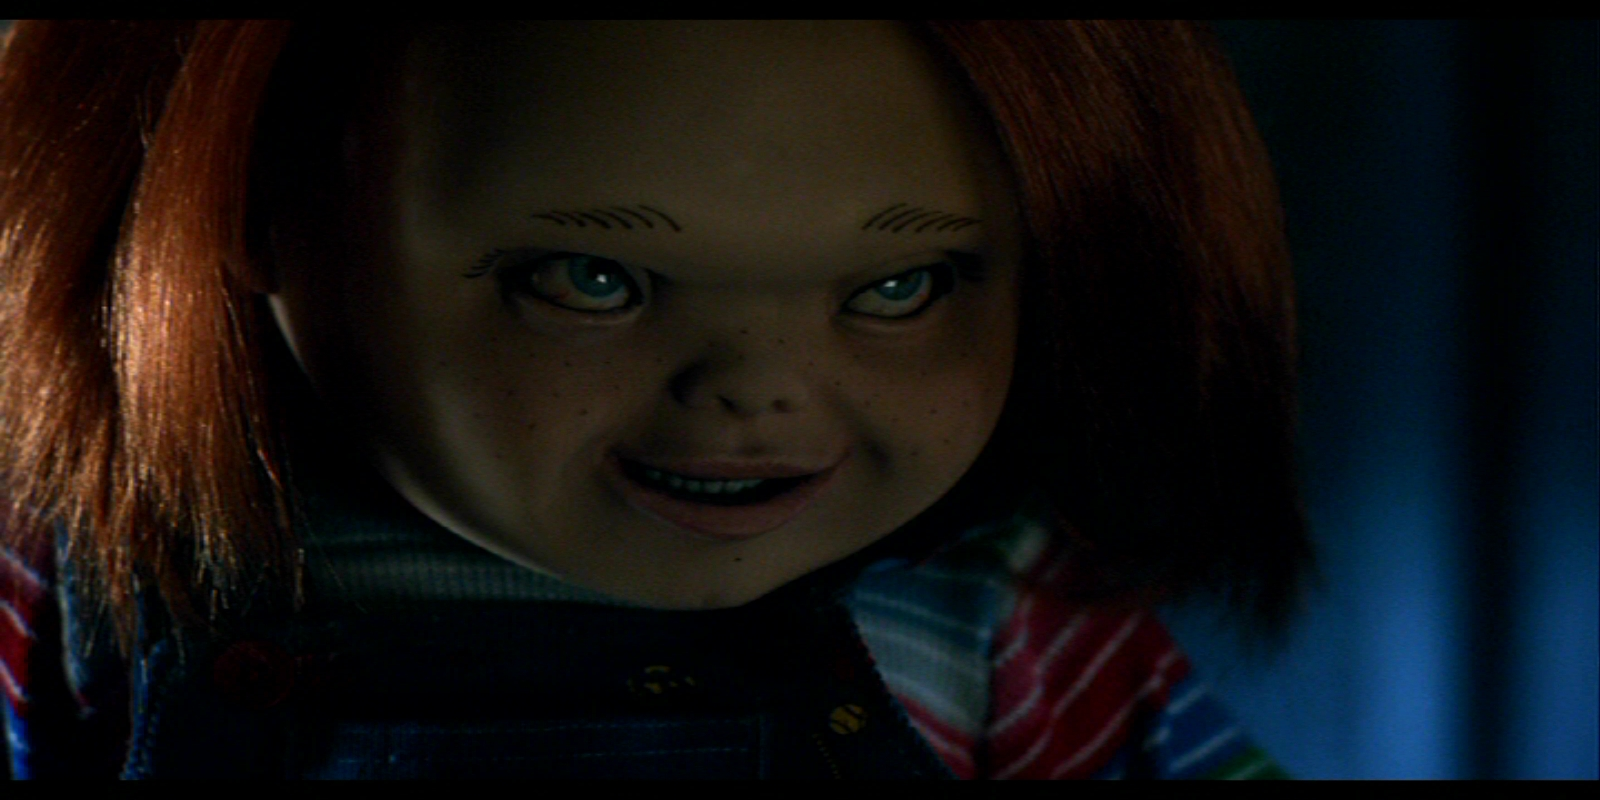 curse of chucky wallpaper images pictures becuo